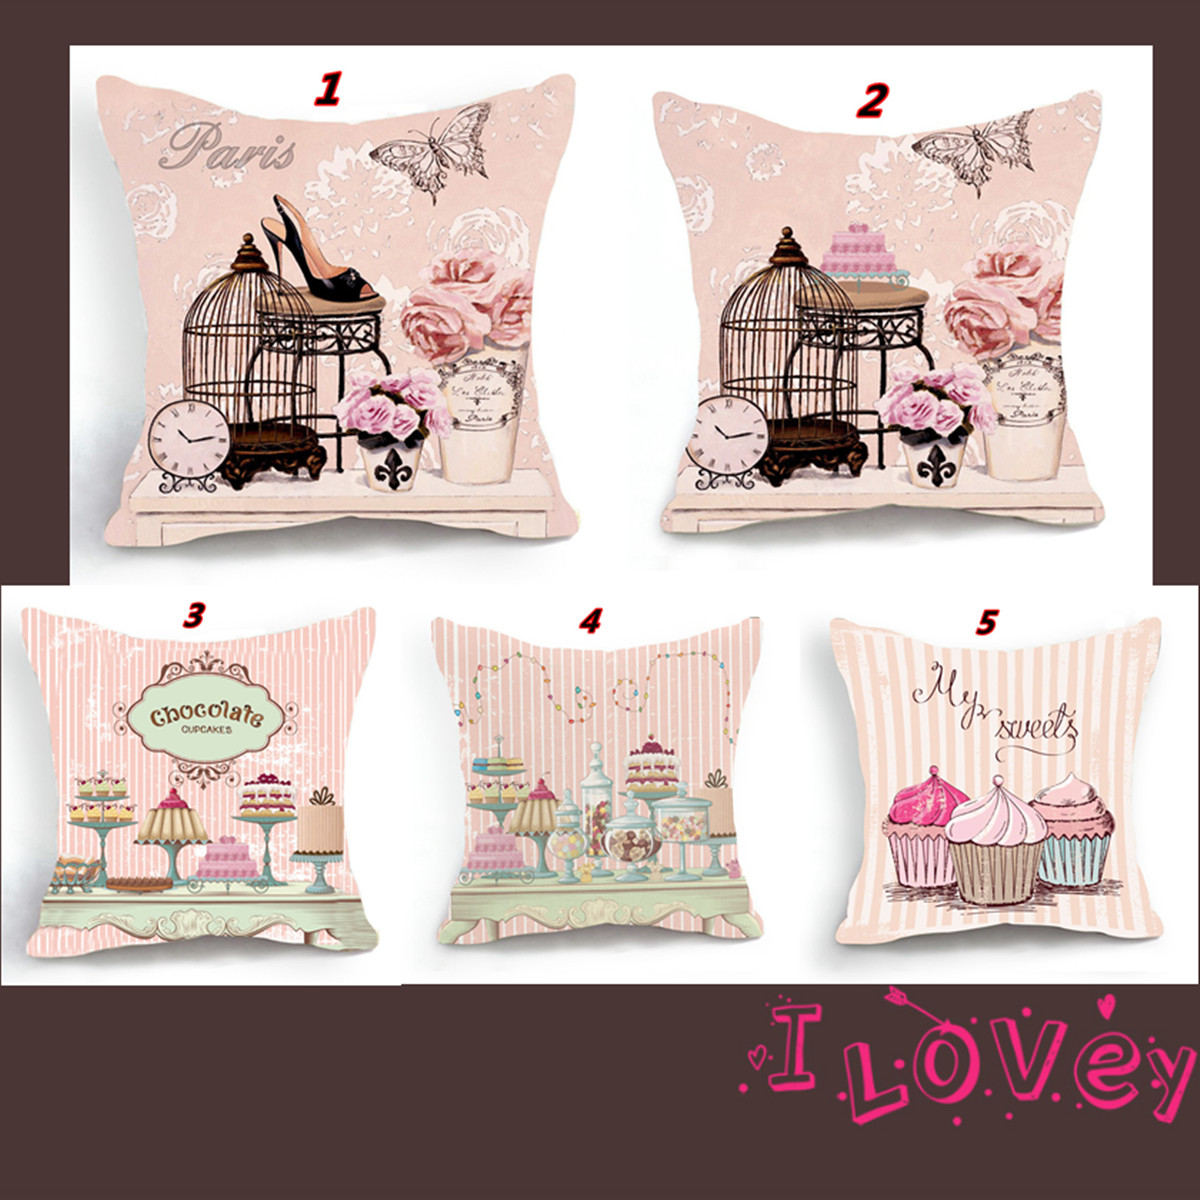 Cushion Cover Vintage Flower Pillow Case Pink Flower High Heels Wintersweet Cherry Blossom Home Decorative Throw Pillow Cover